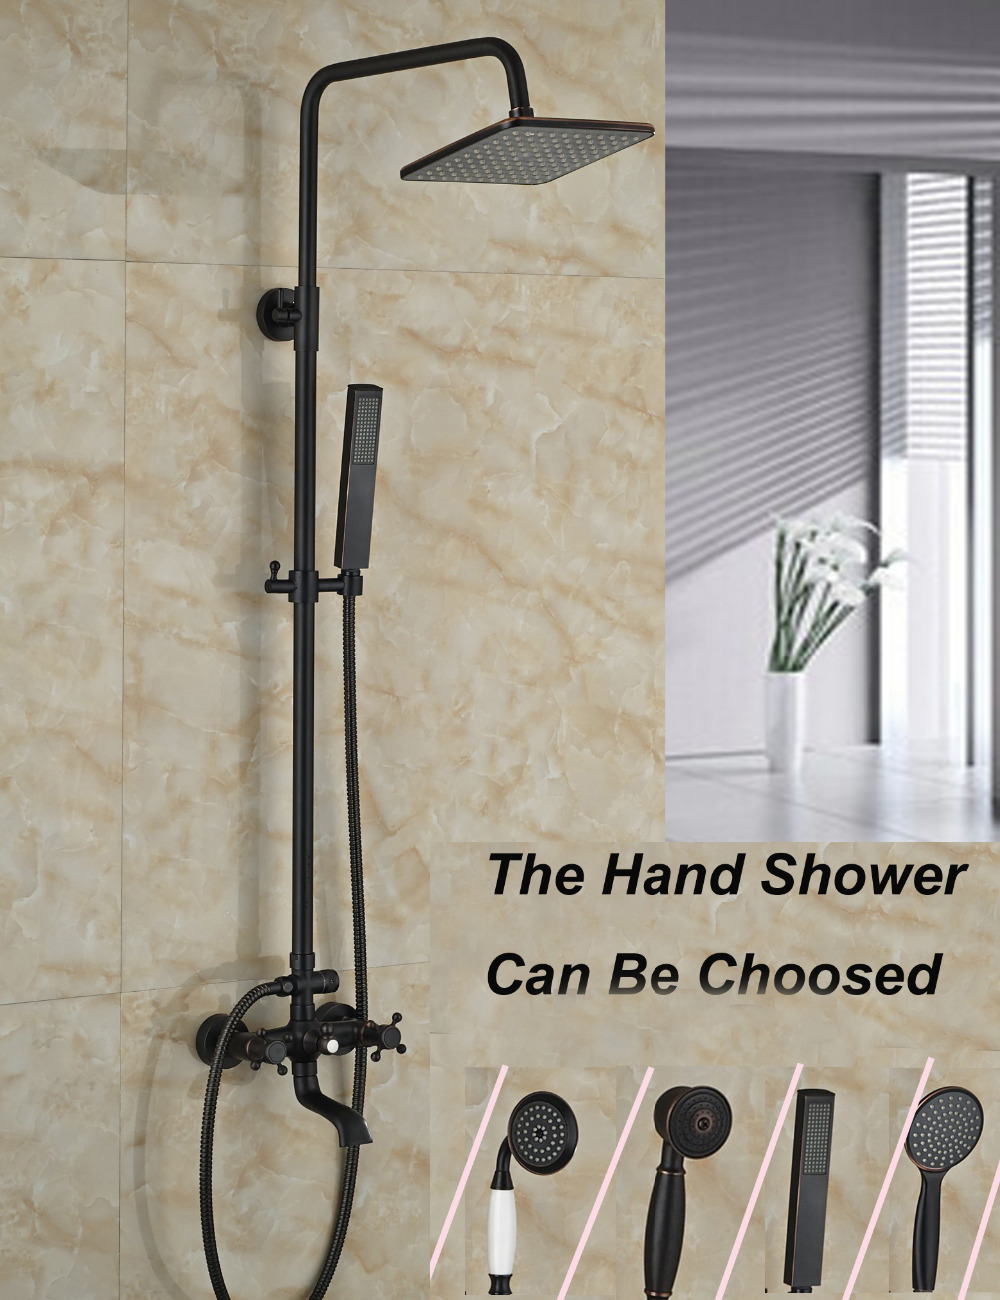 Wholesale And Retail Square Rain Shower Head Faucet Dual Cross Handles Tub Mixer Tap W/ Hand Shower Sprayer Wall Mounted